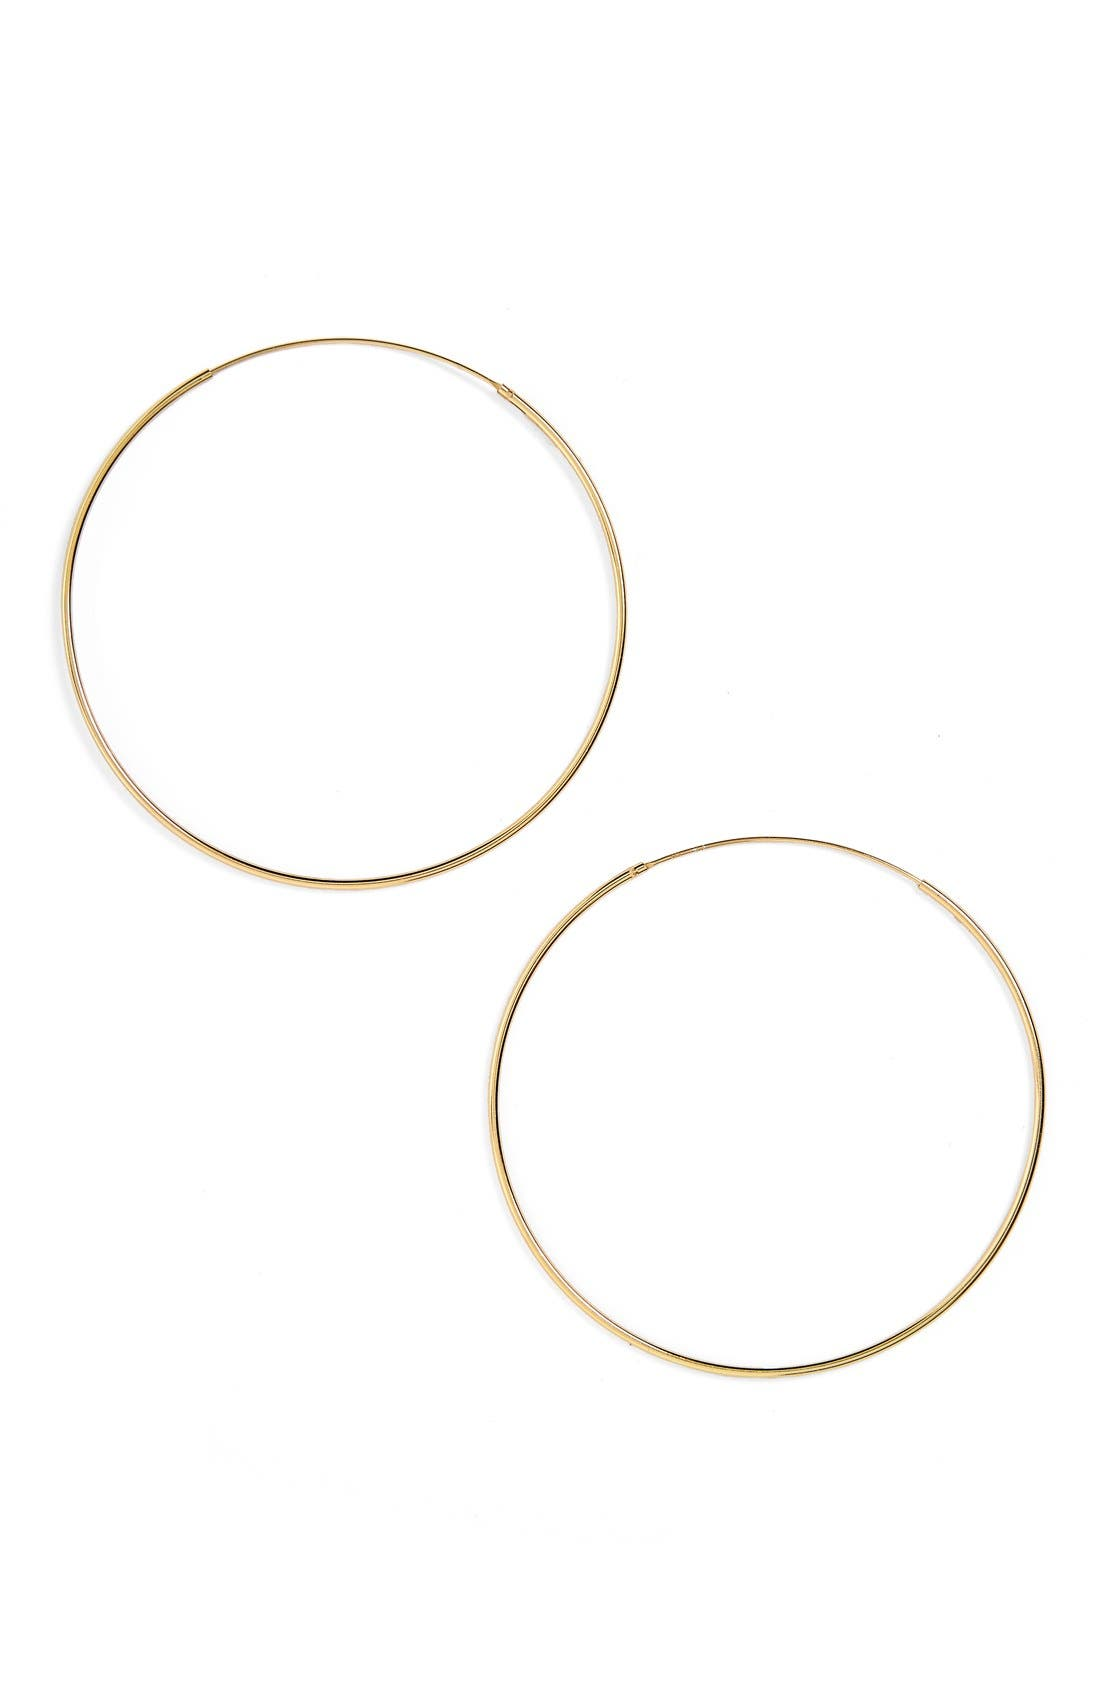 ARGENTO VIVO Extra Large Endless Hoop Earrings in Gold Vermeil